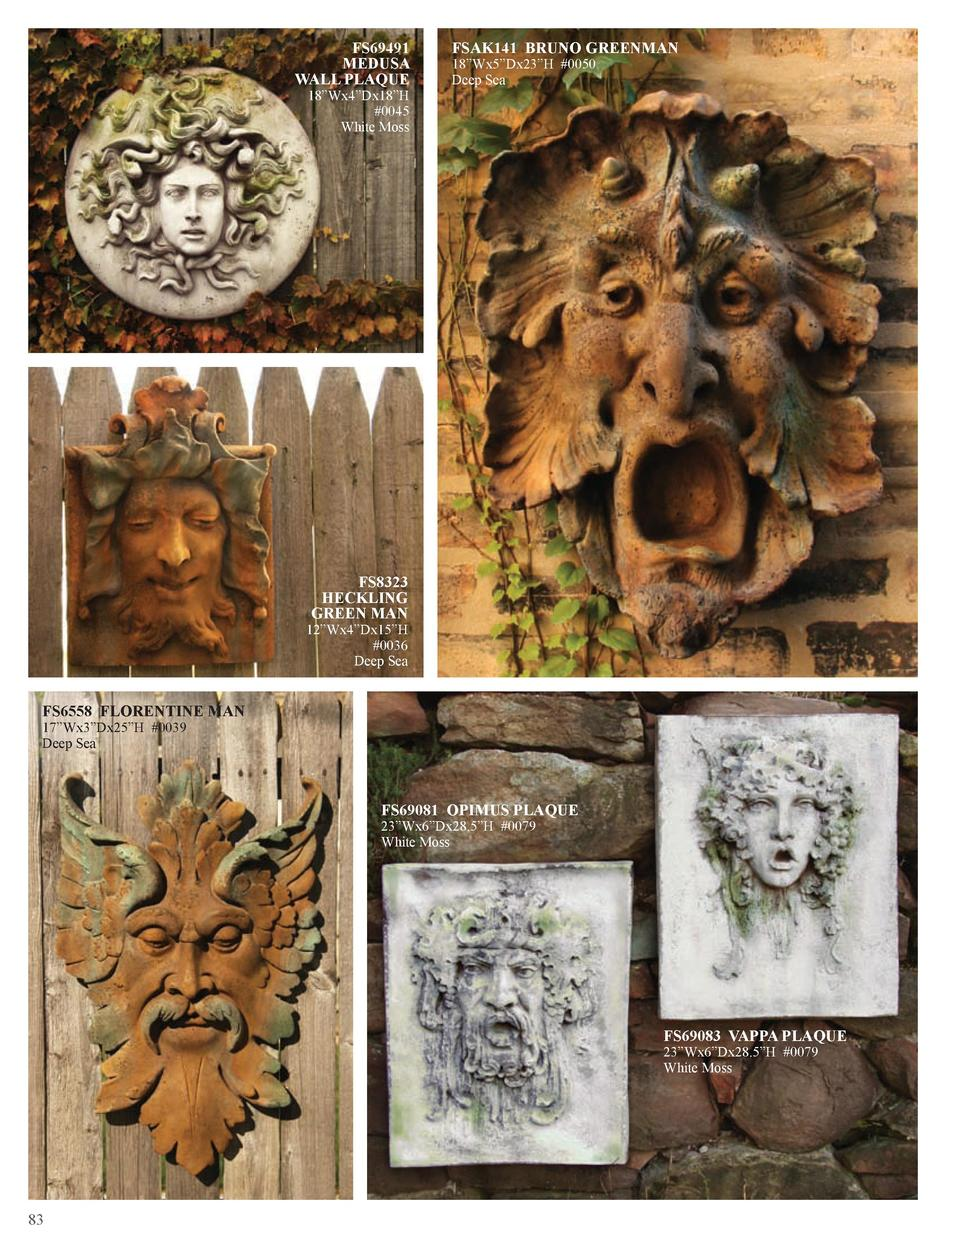 FS69491 MEDUSA WALL PLAQUE 18   Wx4   Dx18   H  0045 White Moss  FSAK141 BRUNO GREENMAN 18   Wx5   Dx23   H  0050 Deep Sea...